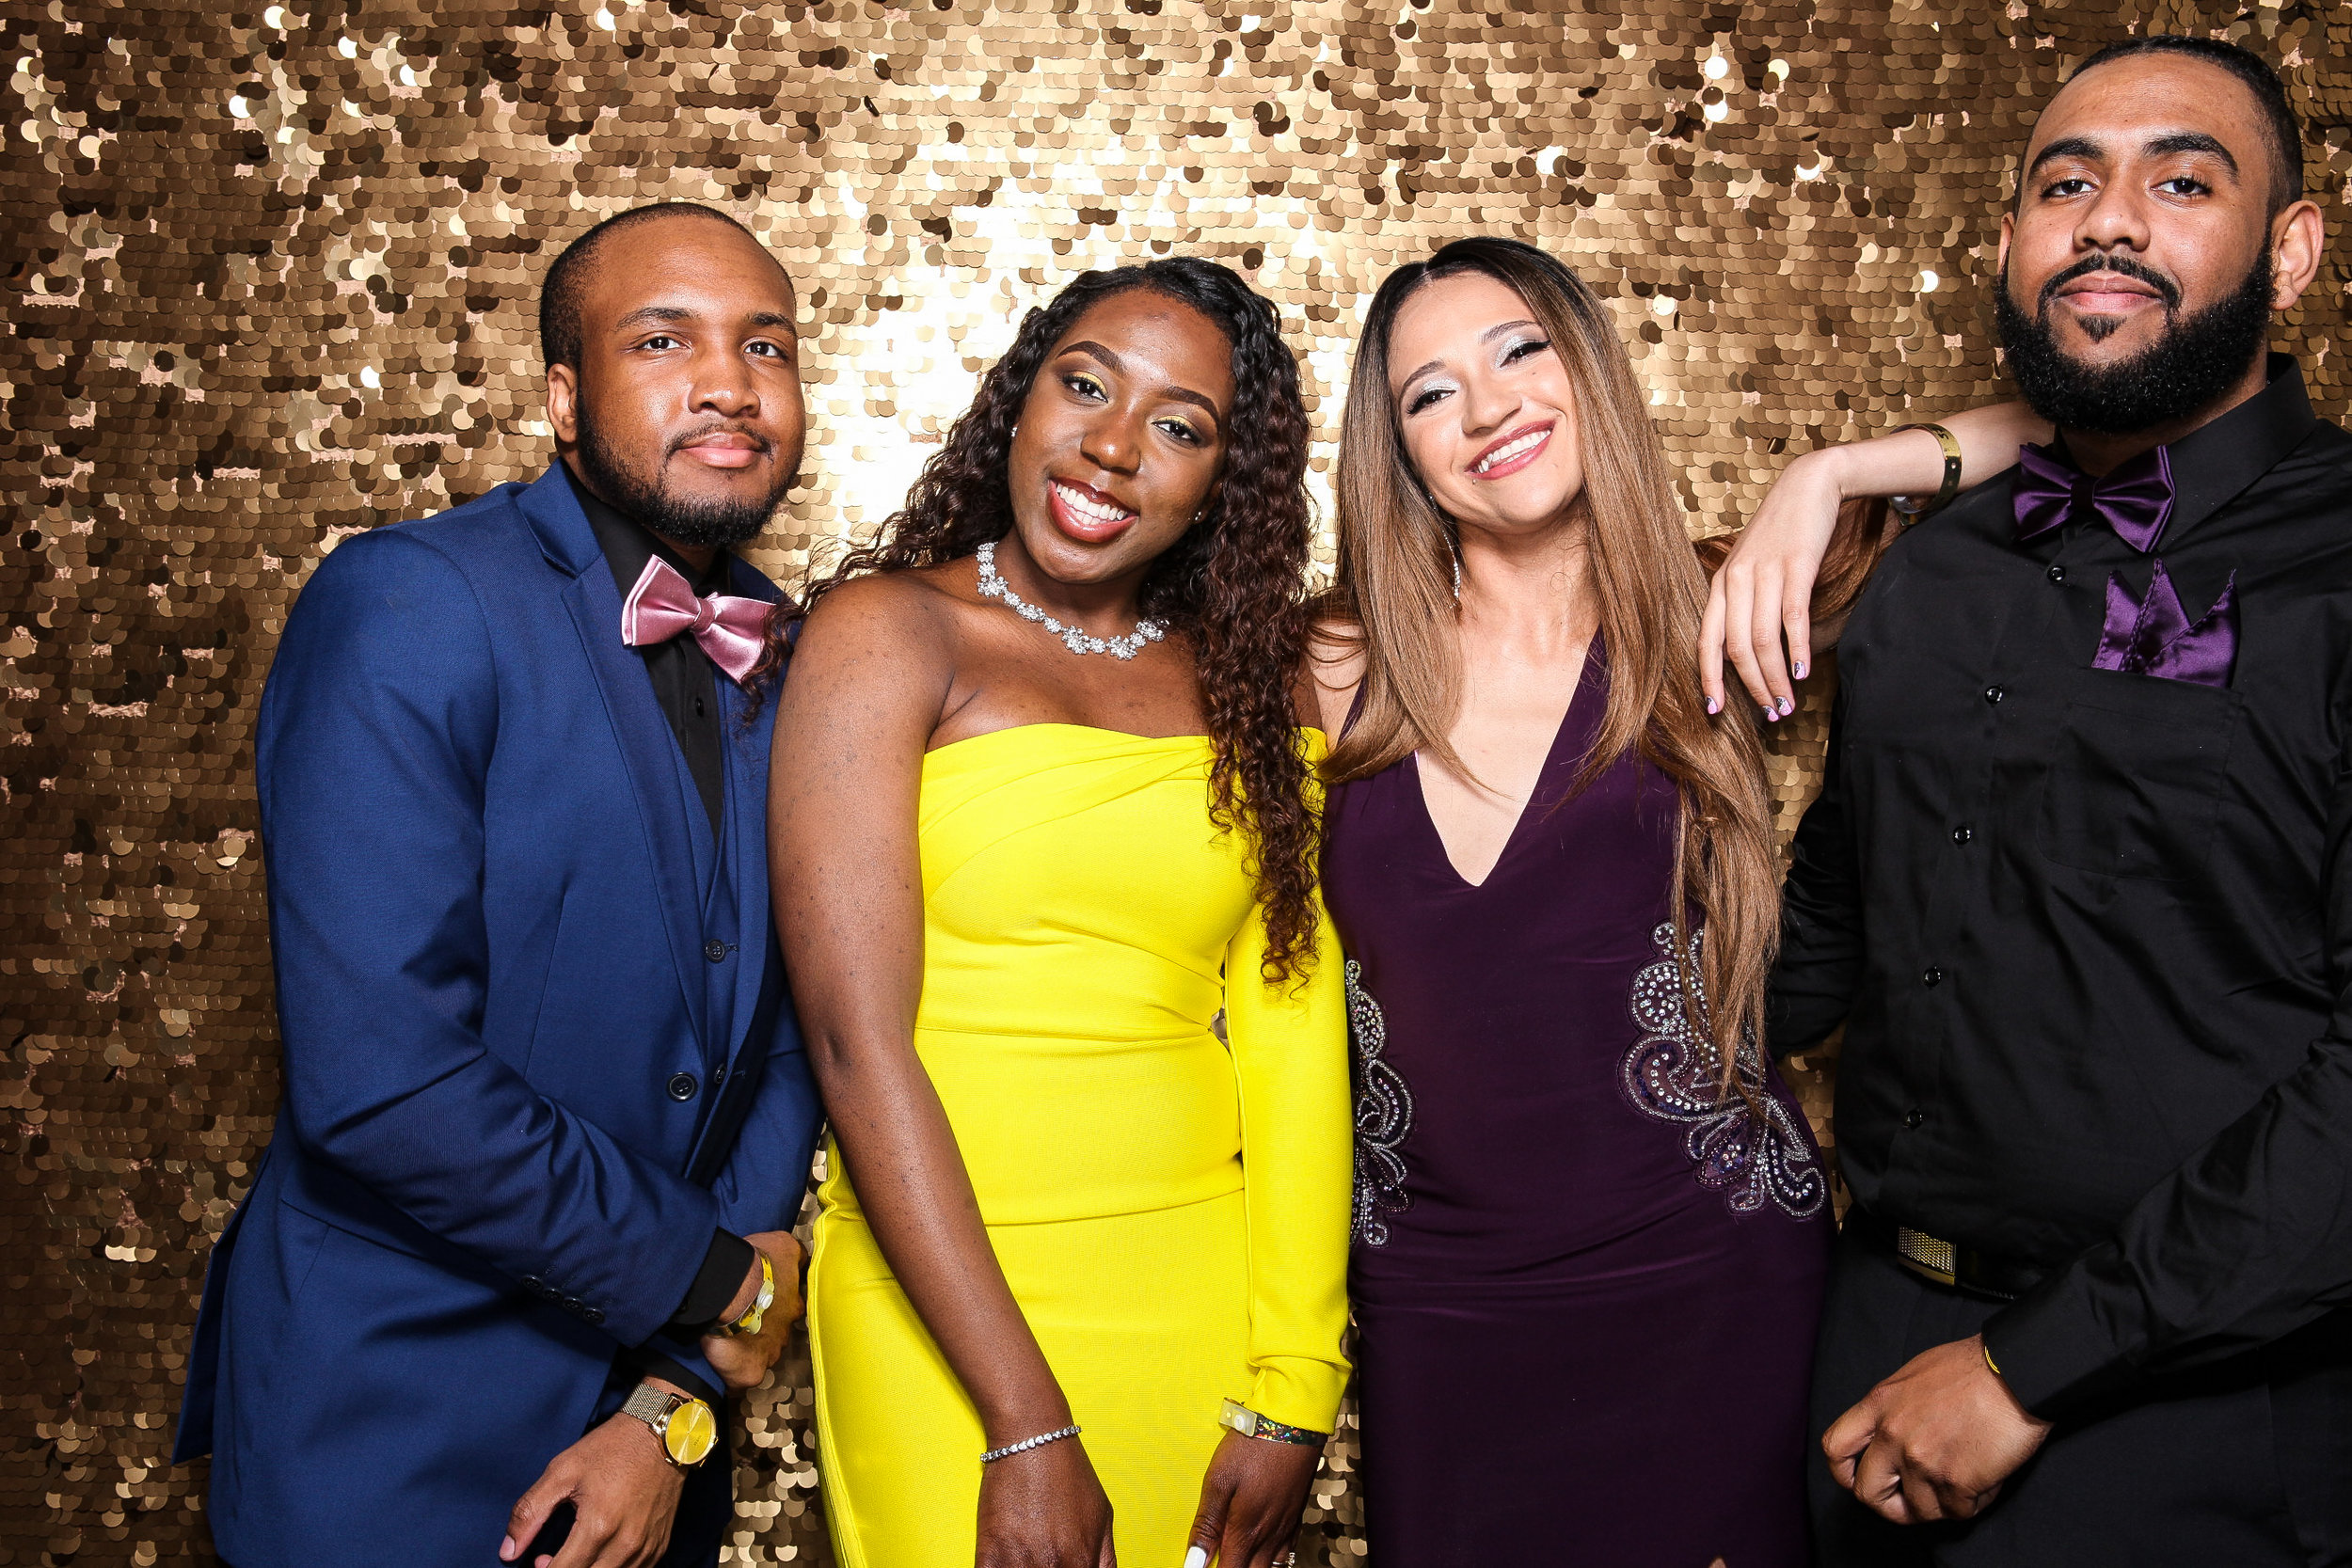 20190503_Adelphi_Senior_Formal-049.jpg